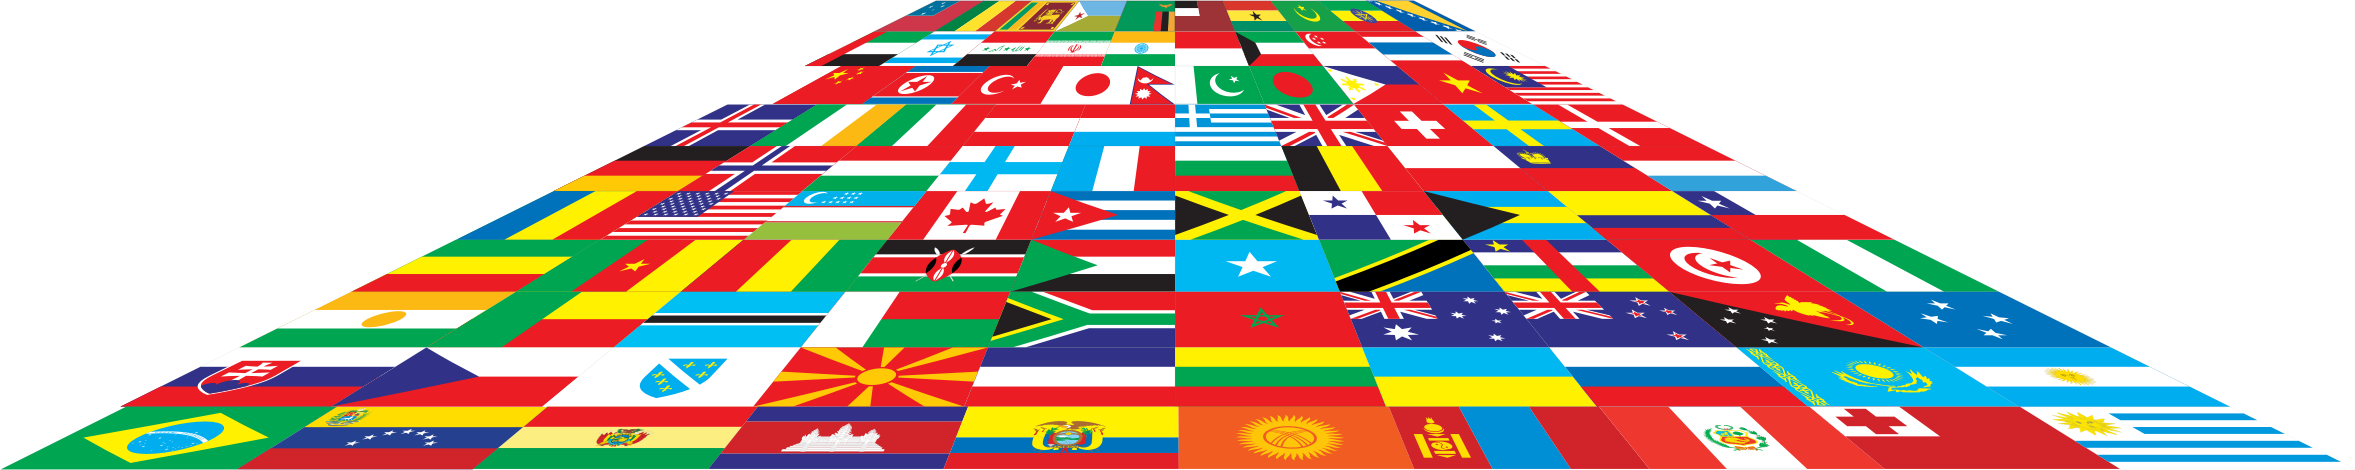 World Flags Perspective 3 by GDJ